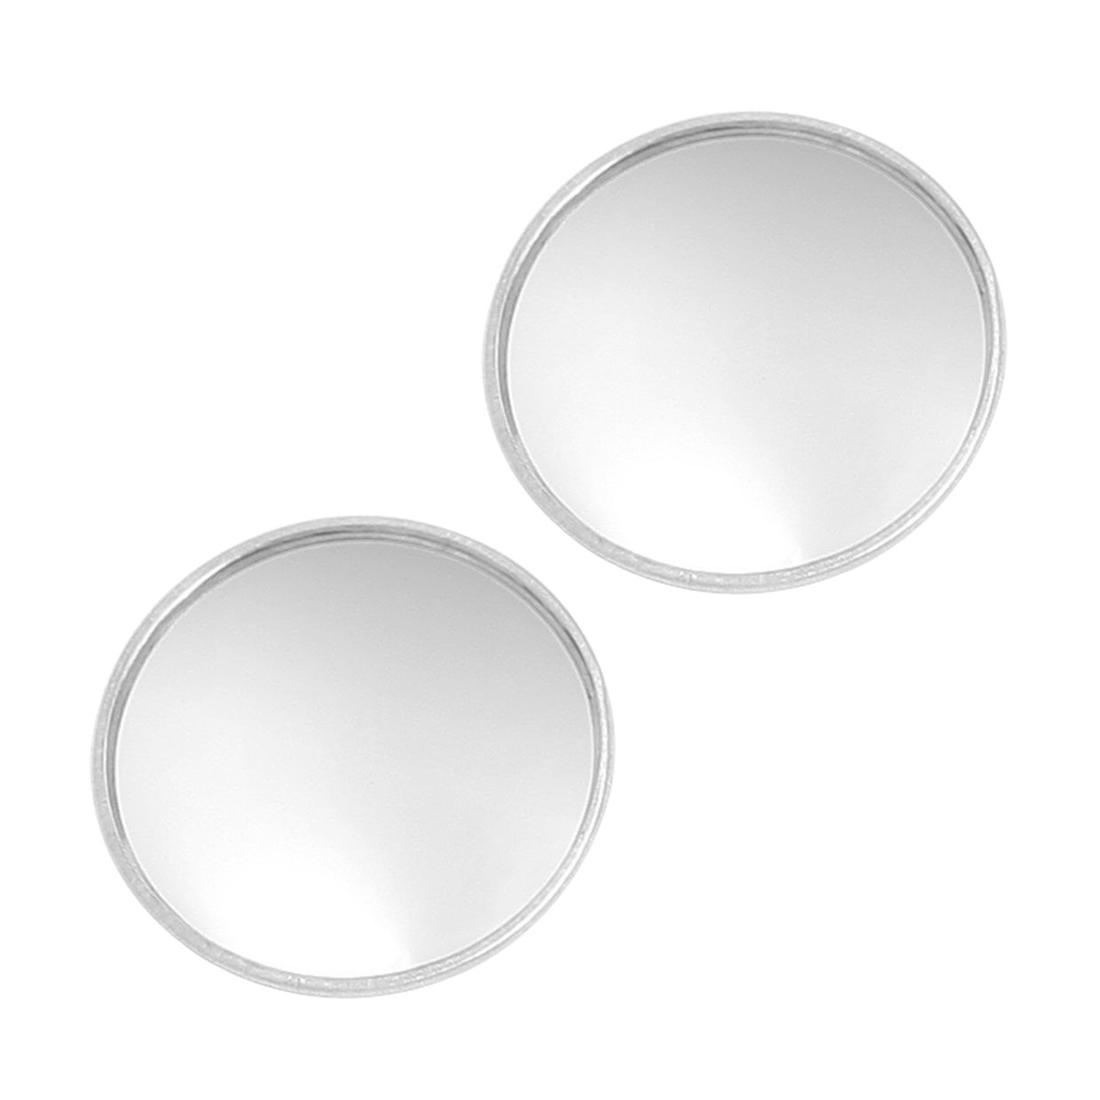 2 Pcs Round Stick-On Convex Rearview Blind Spot Mirror Set